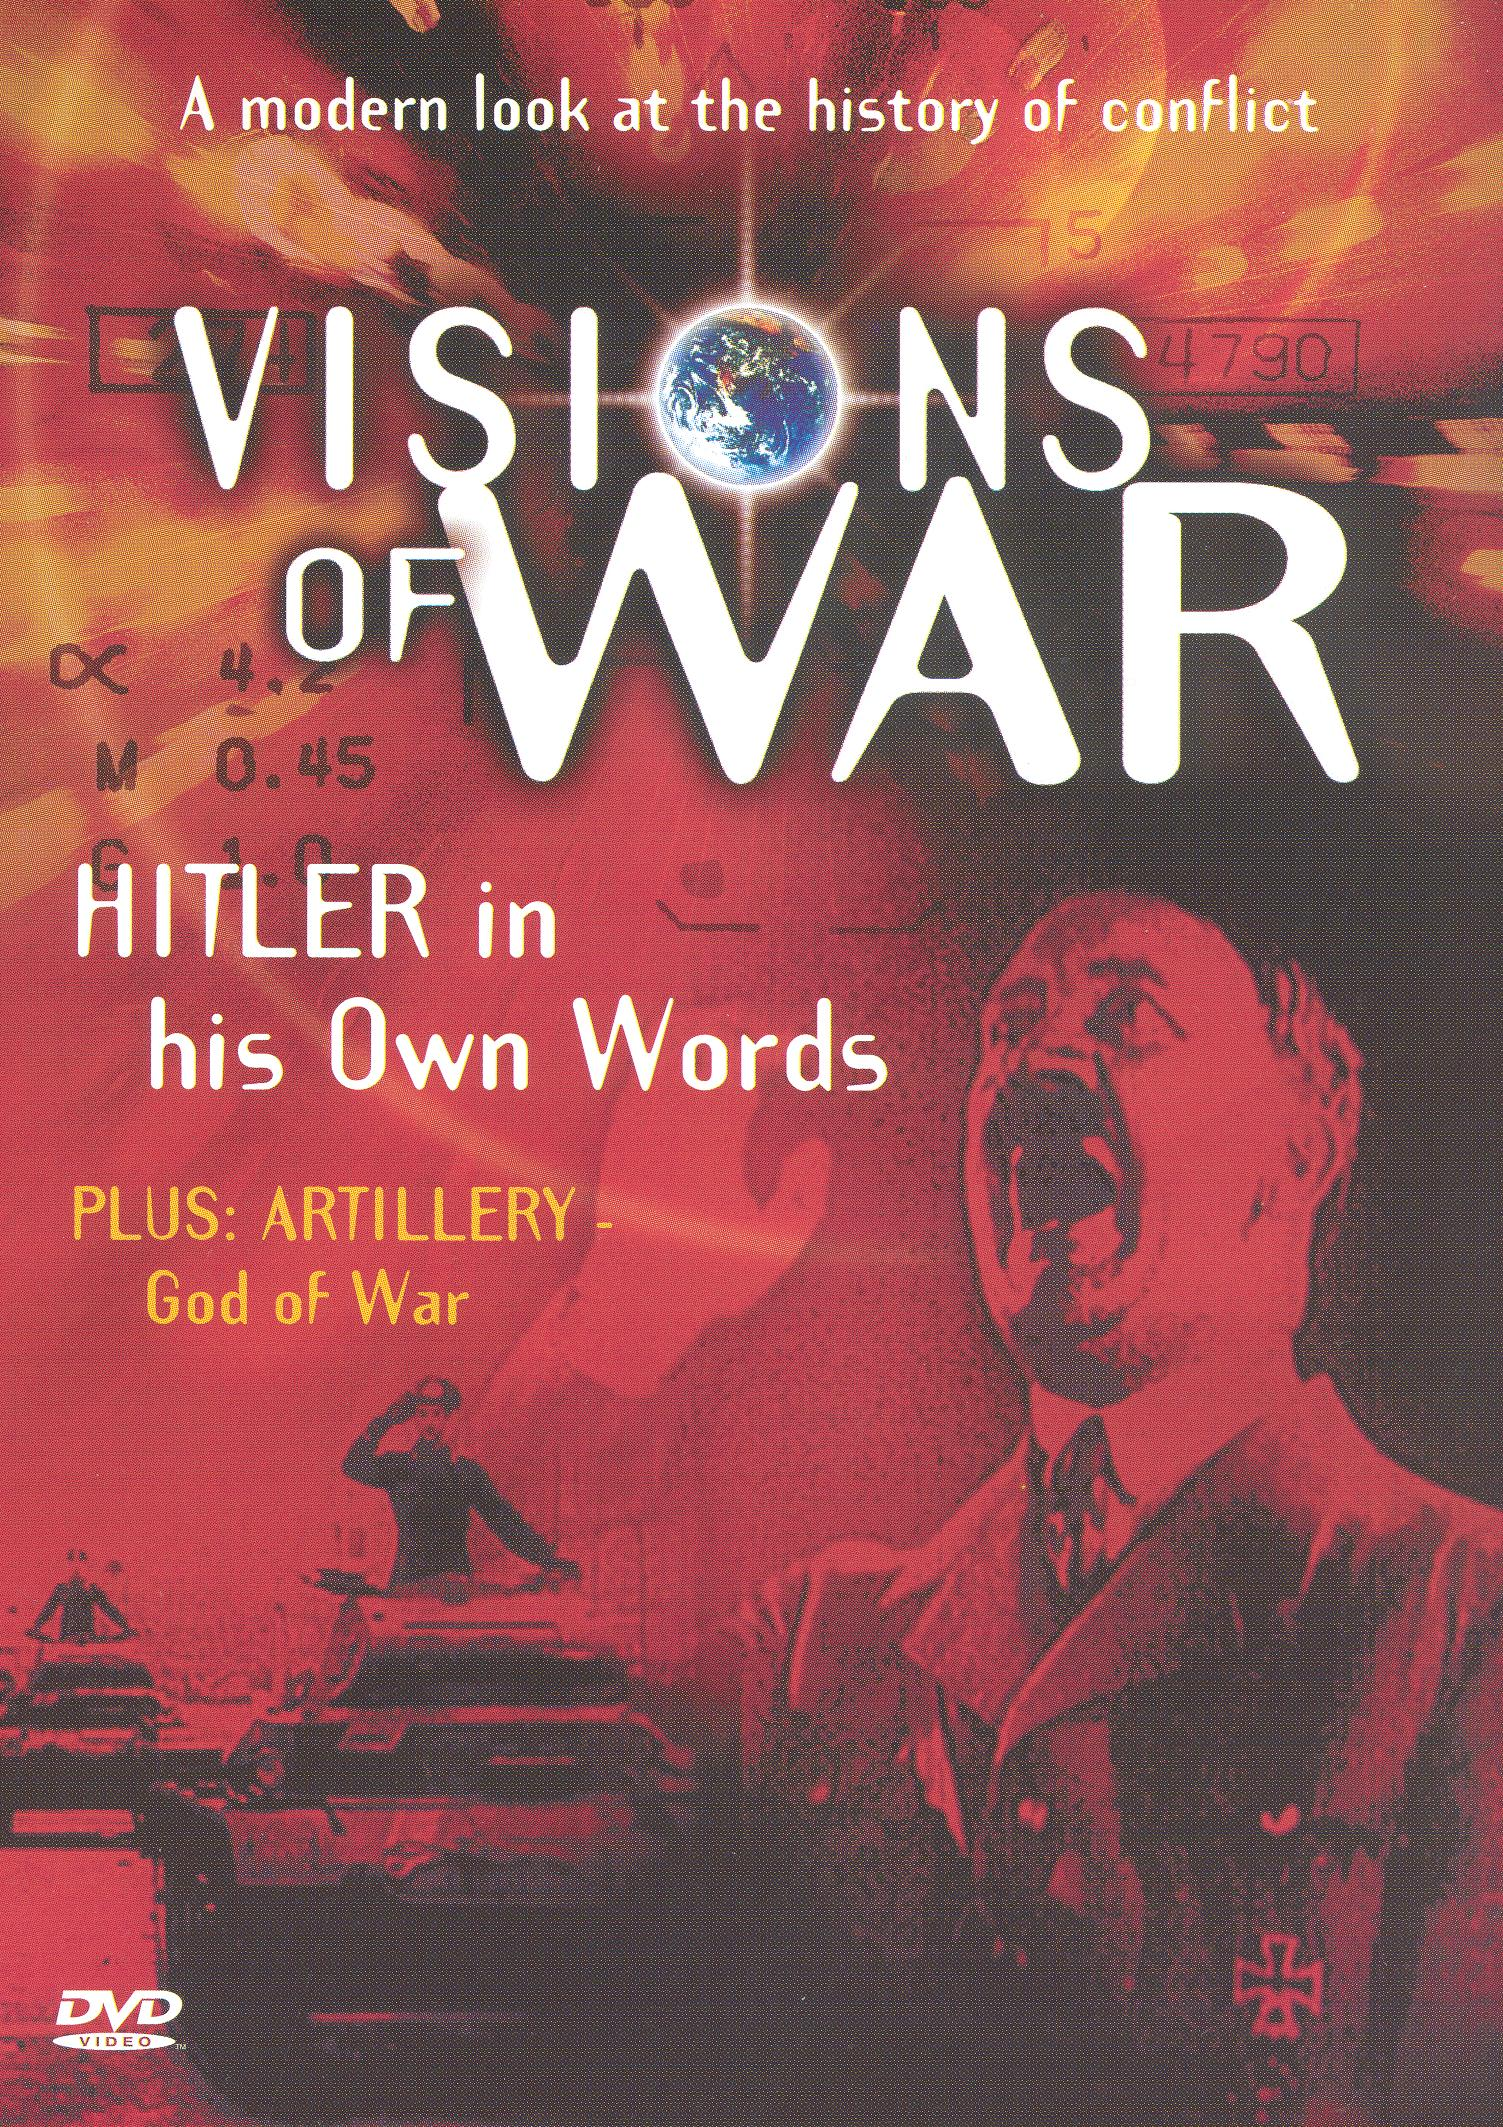 Visions of War: A Modern Look at the History of Conflict - Hitler in His Own Words